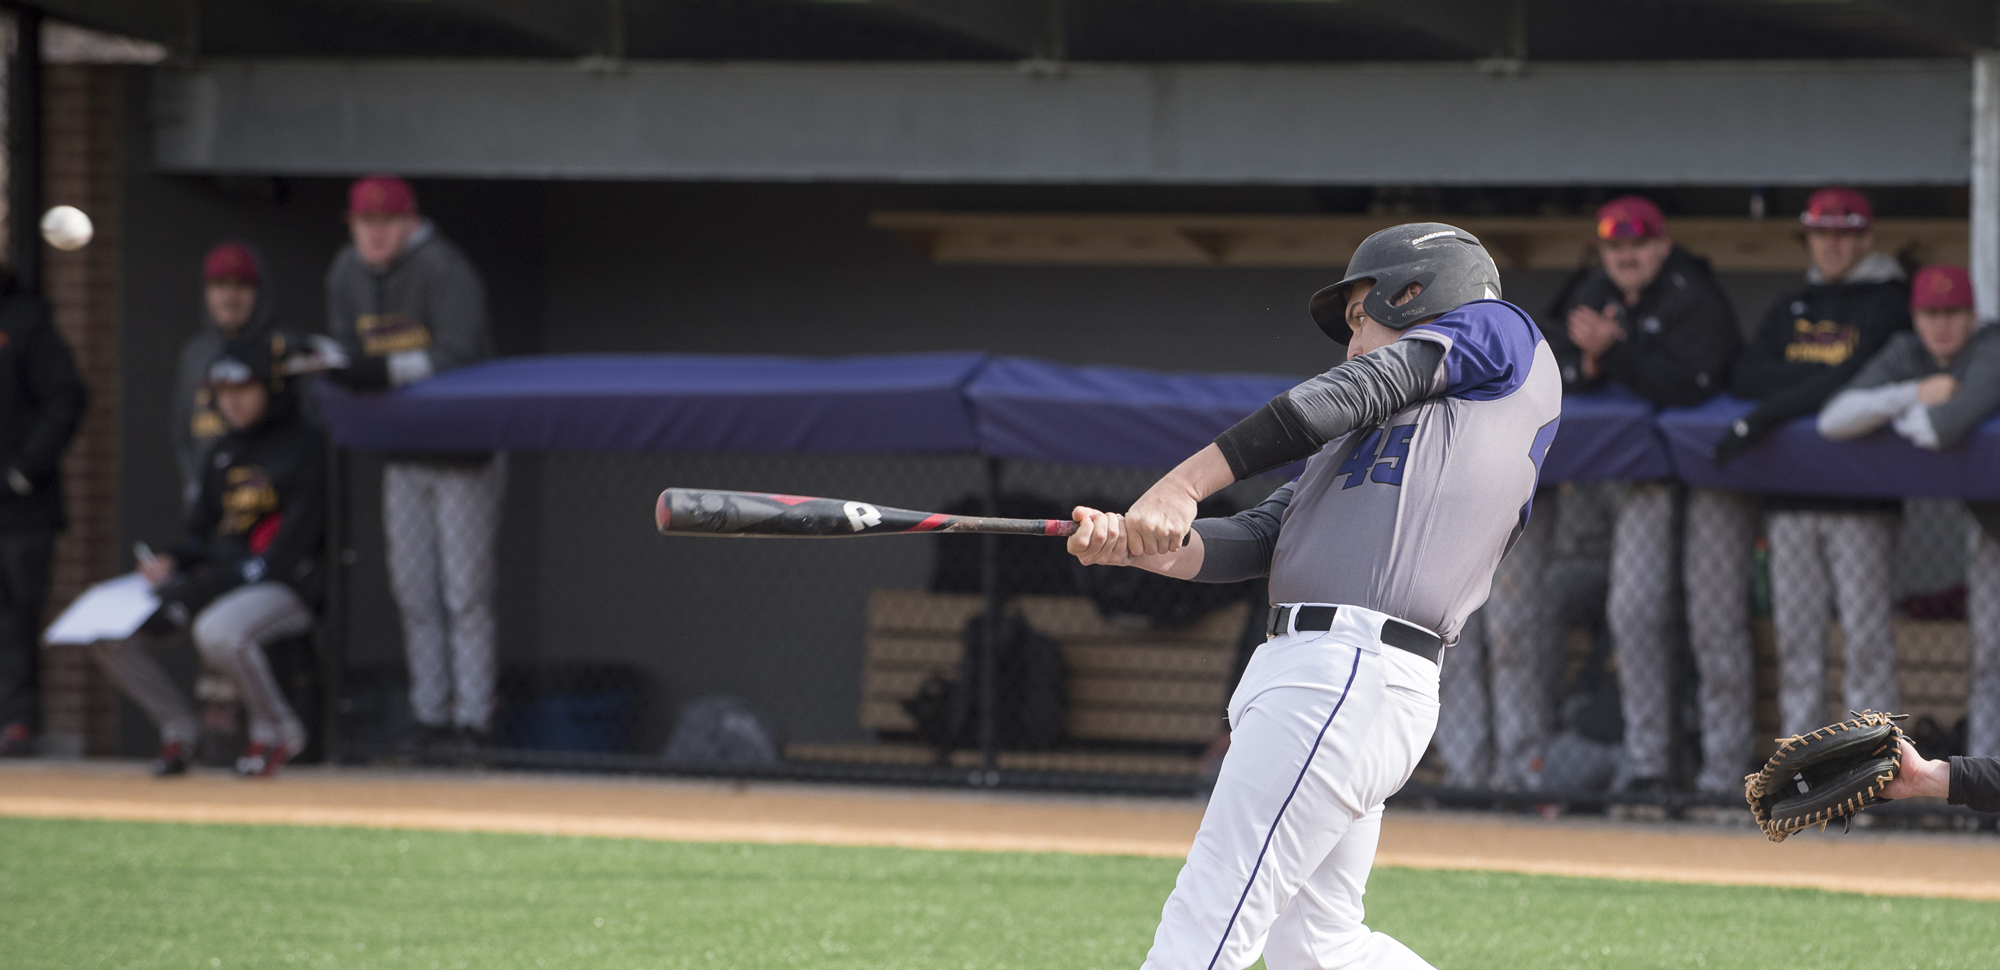 Senior outfielder Sean Haveron had two hits, including a double, and scored a run on Thursday.